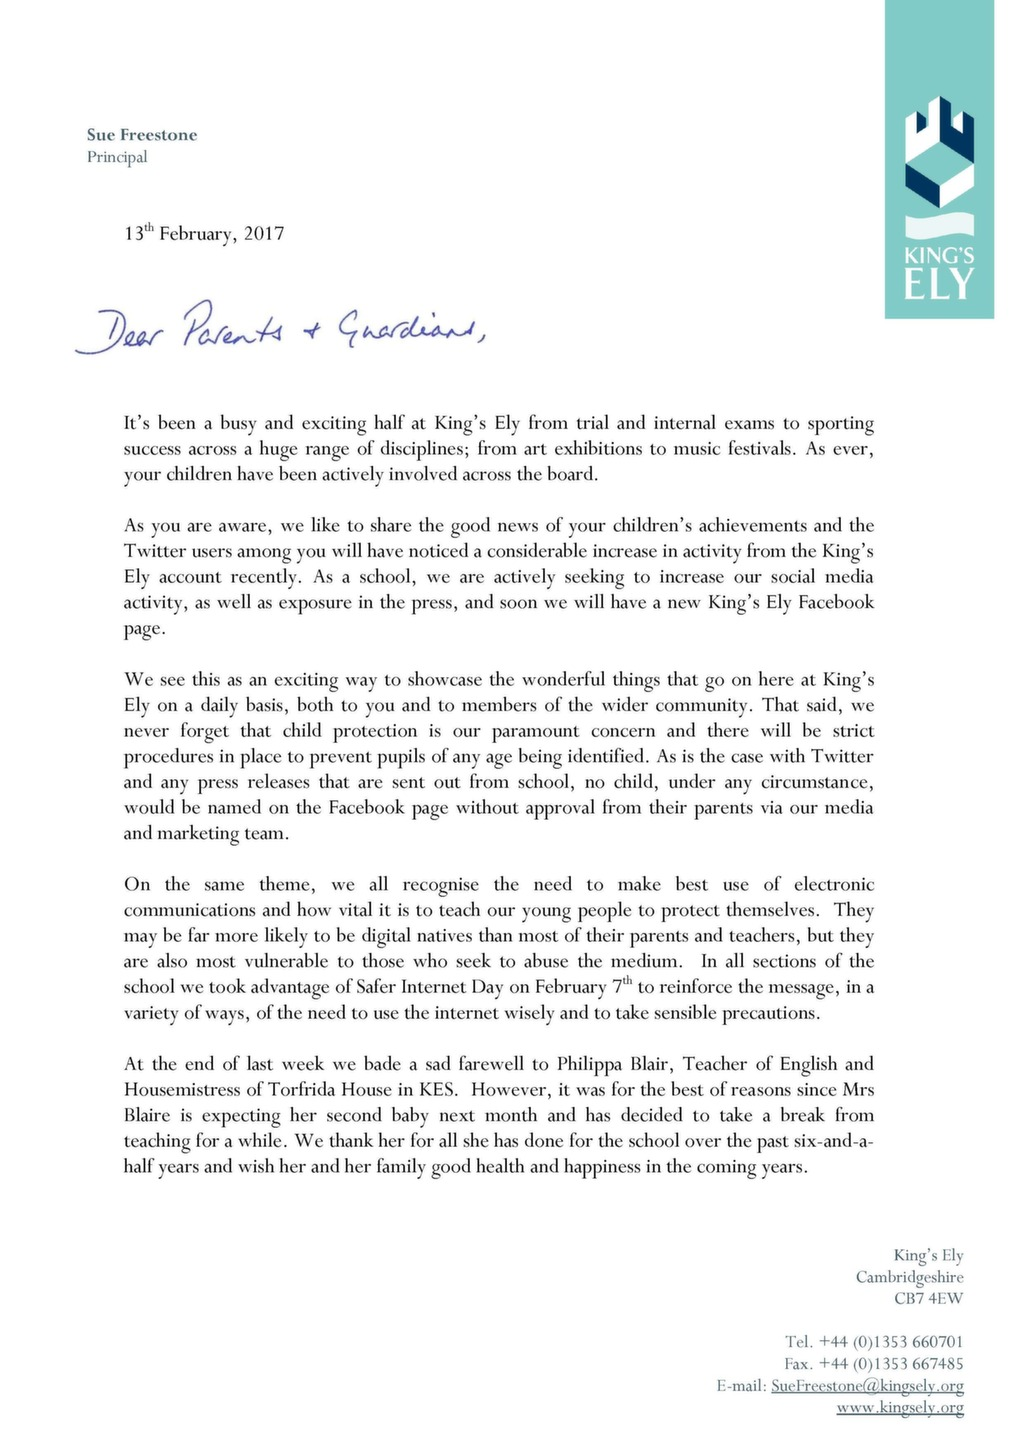 Principal's February 2017 Letter to Parents and Guardians